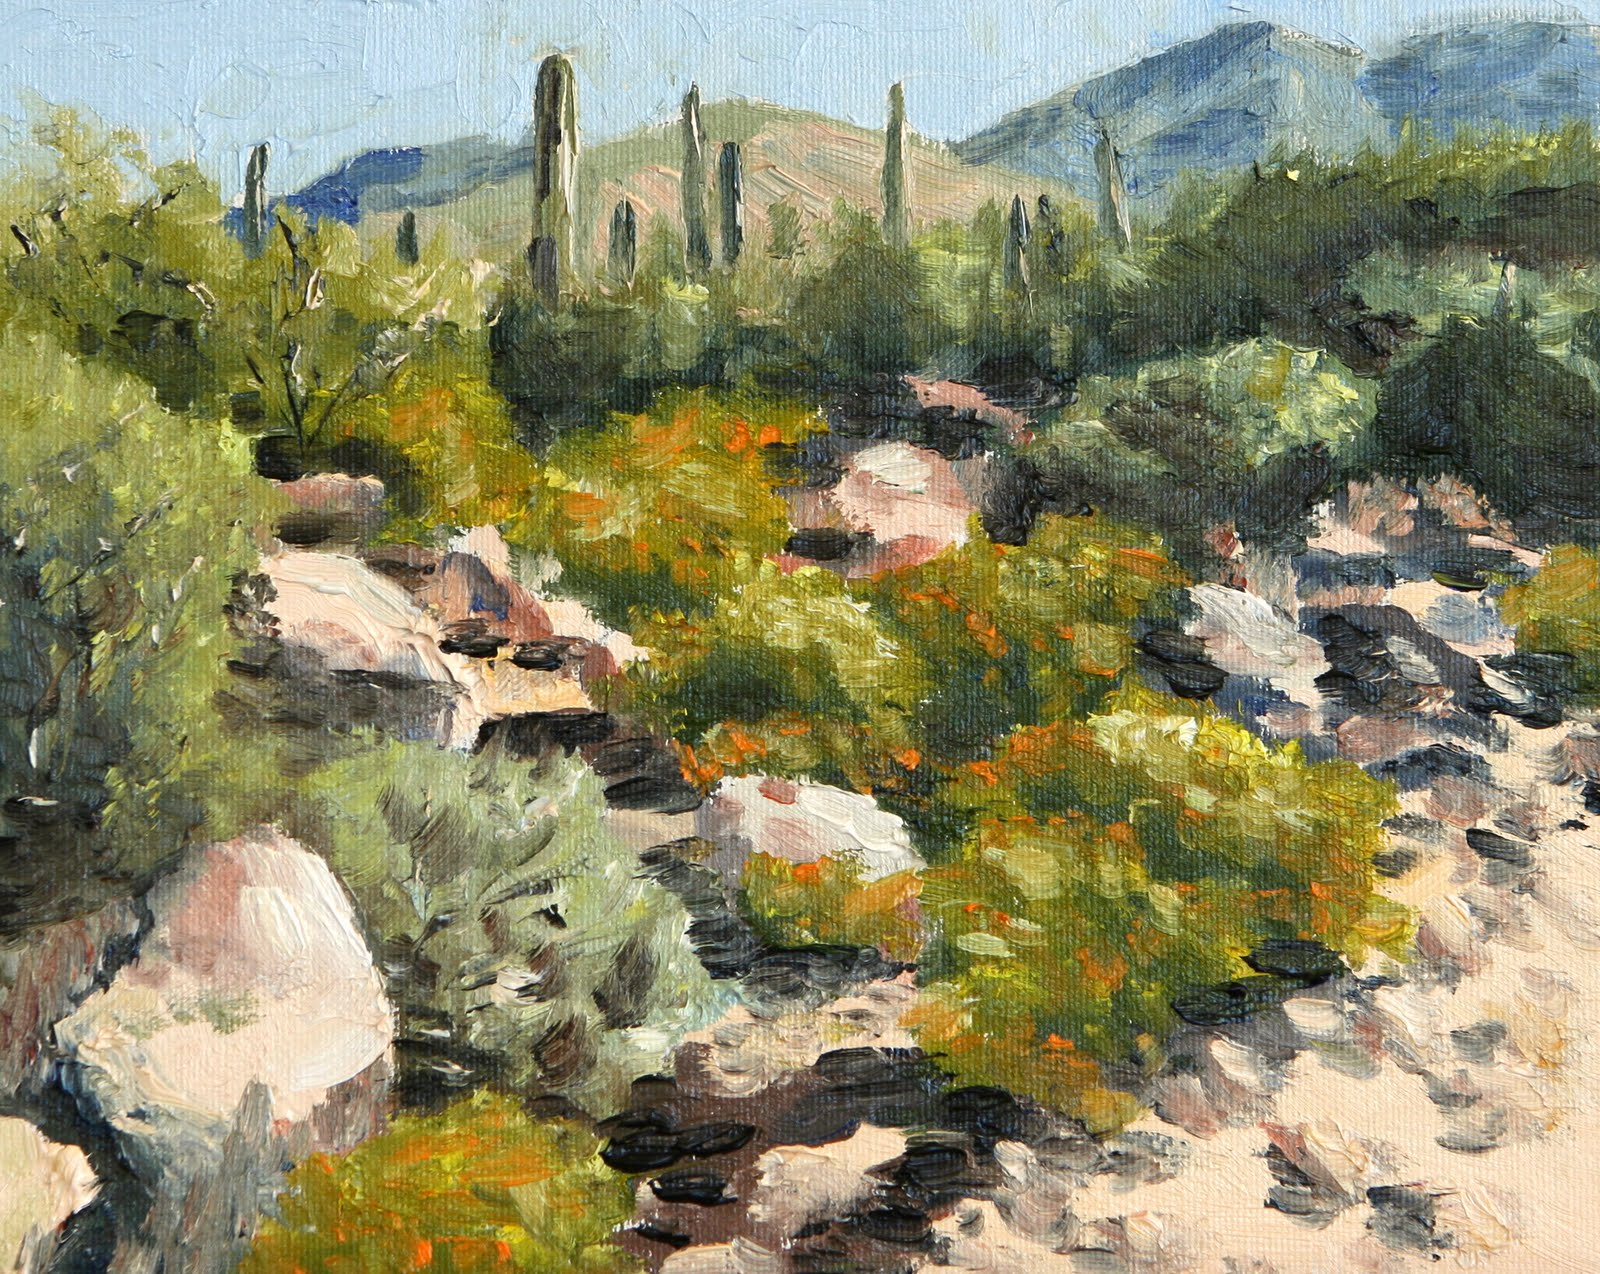 Cactus rock garden oil on canvas x the jumble of rocks